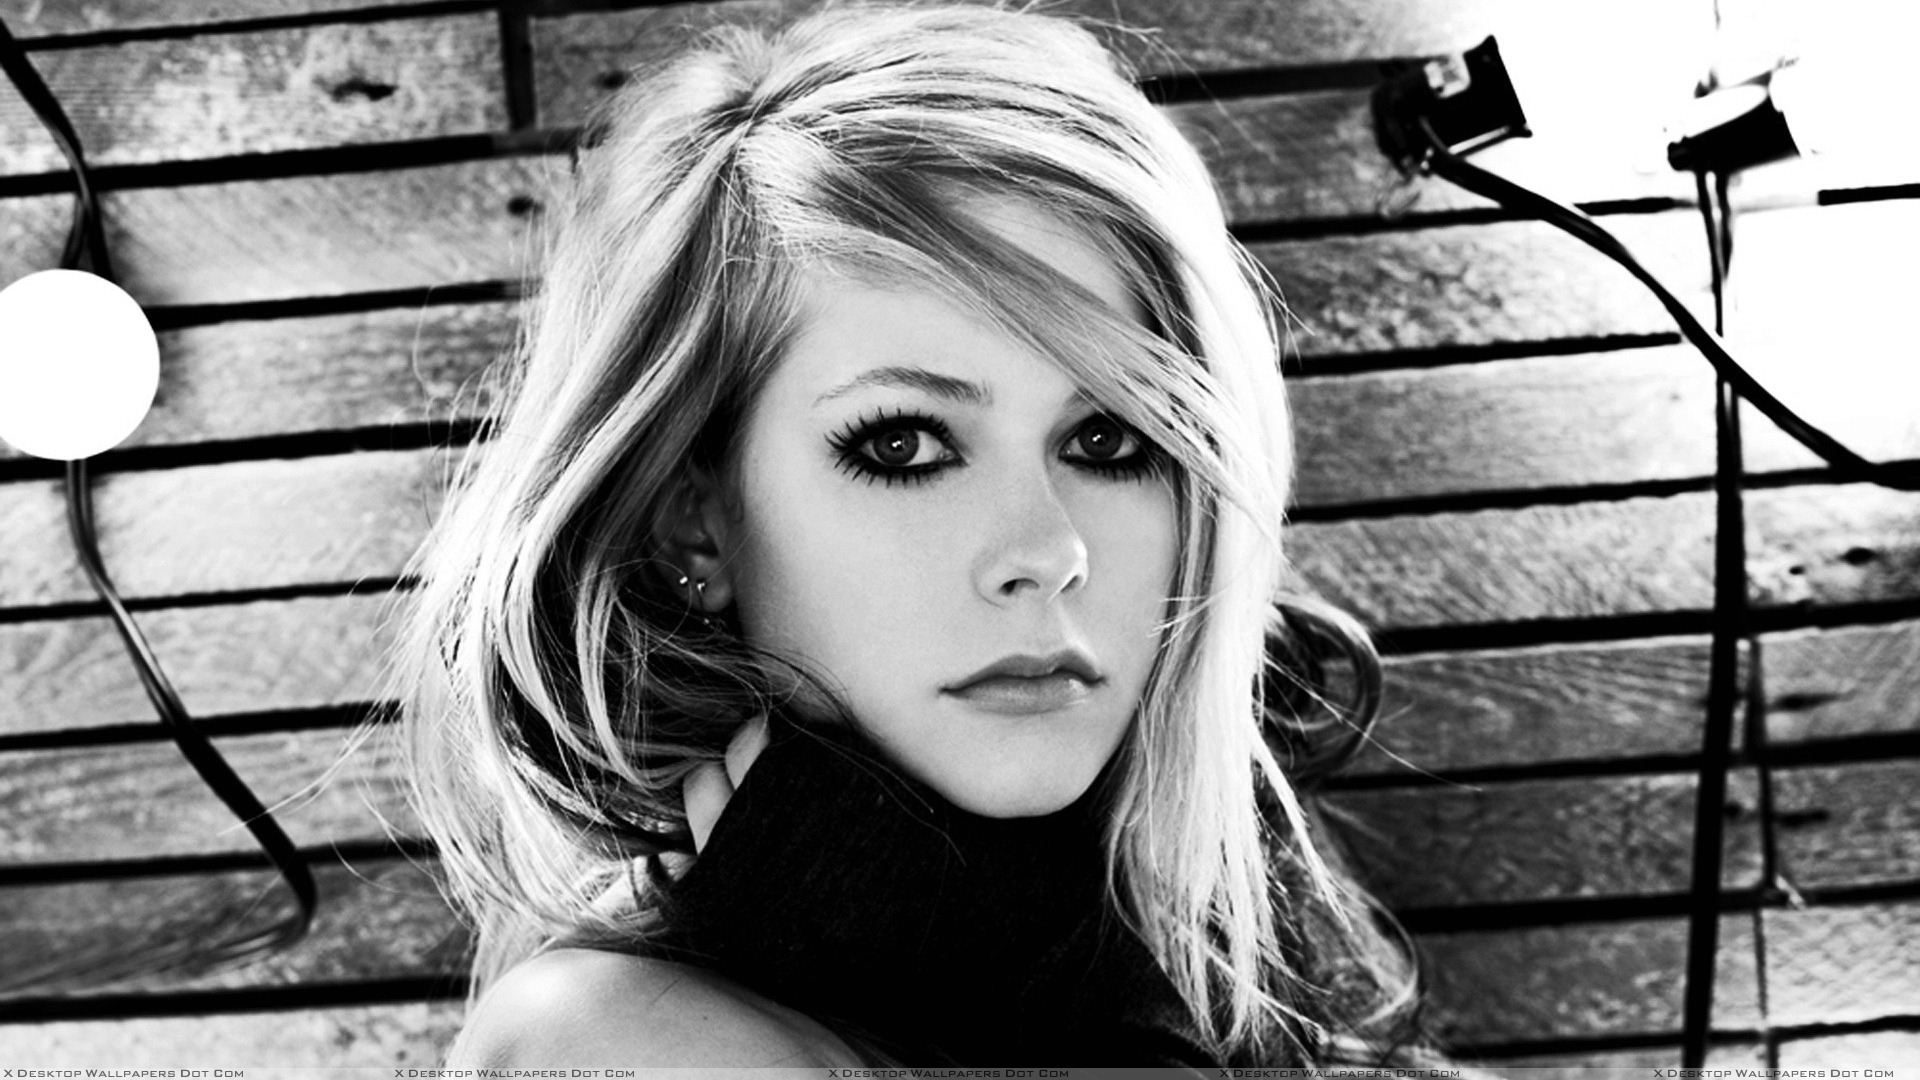 avril lavigne wallpapers, photos & images in hd